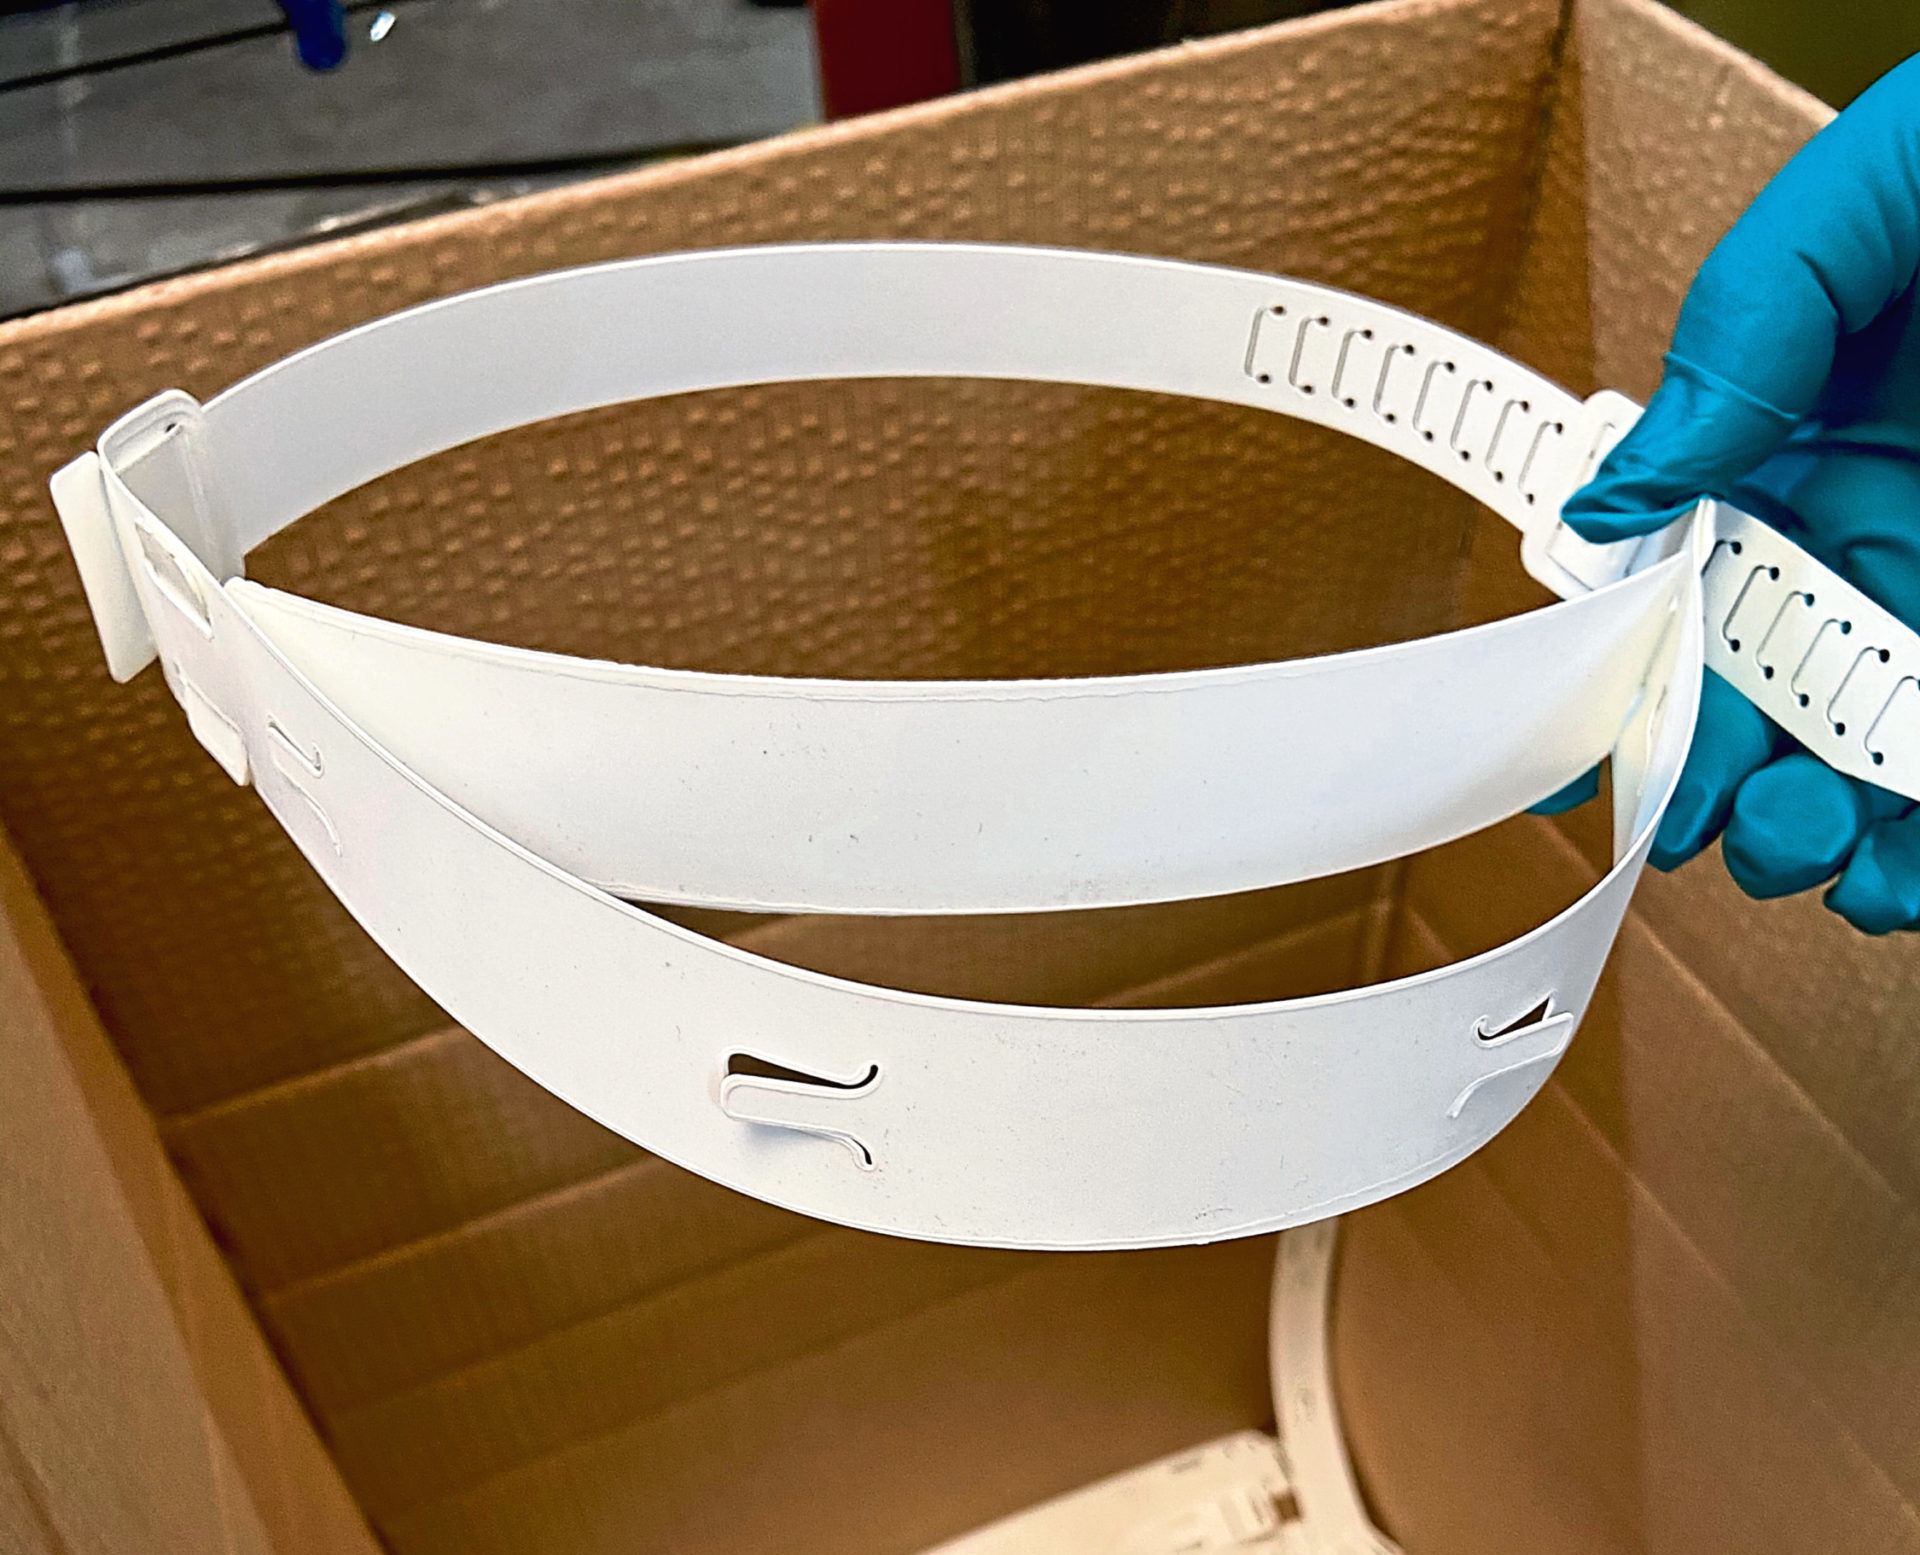 City-based commercial upholstery company Luxous Group Ltd are making 1,000 face visors a day